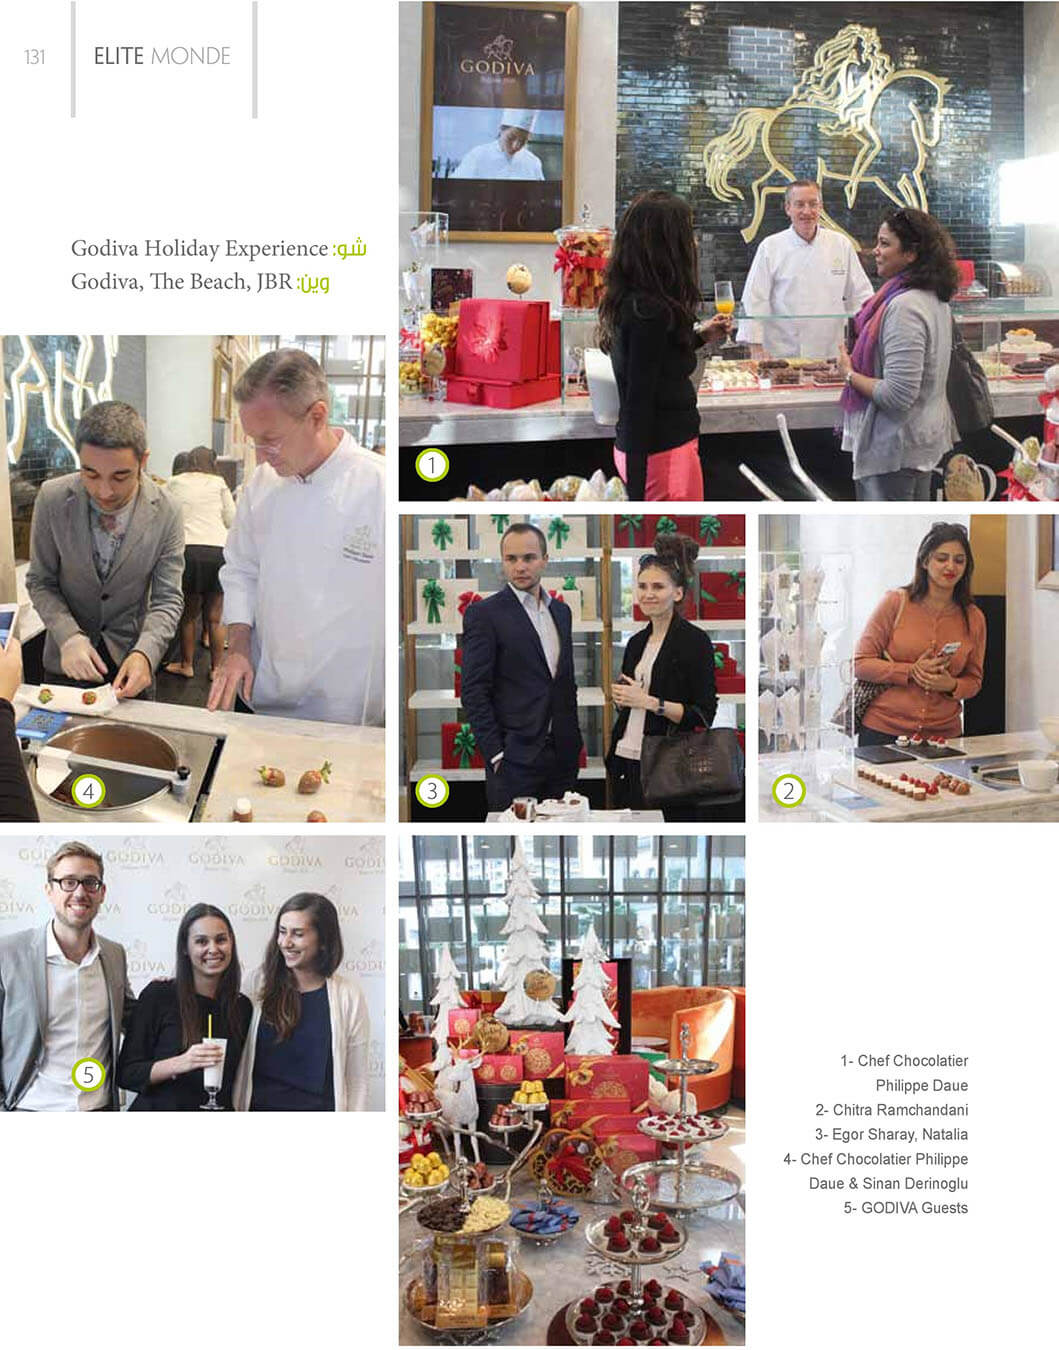 GODIVA_Elite_Monde_January_2015